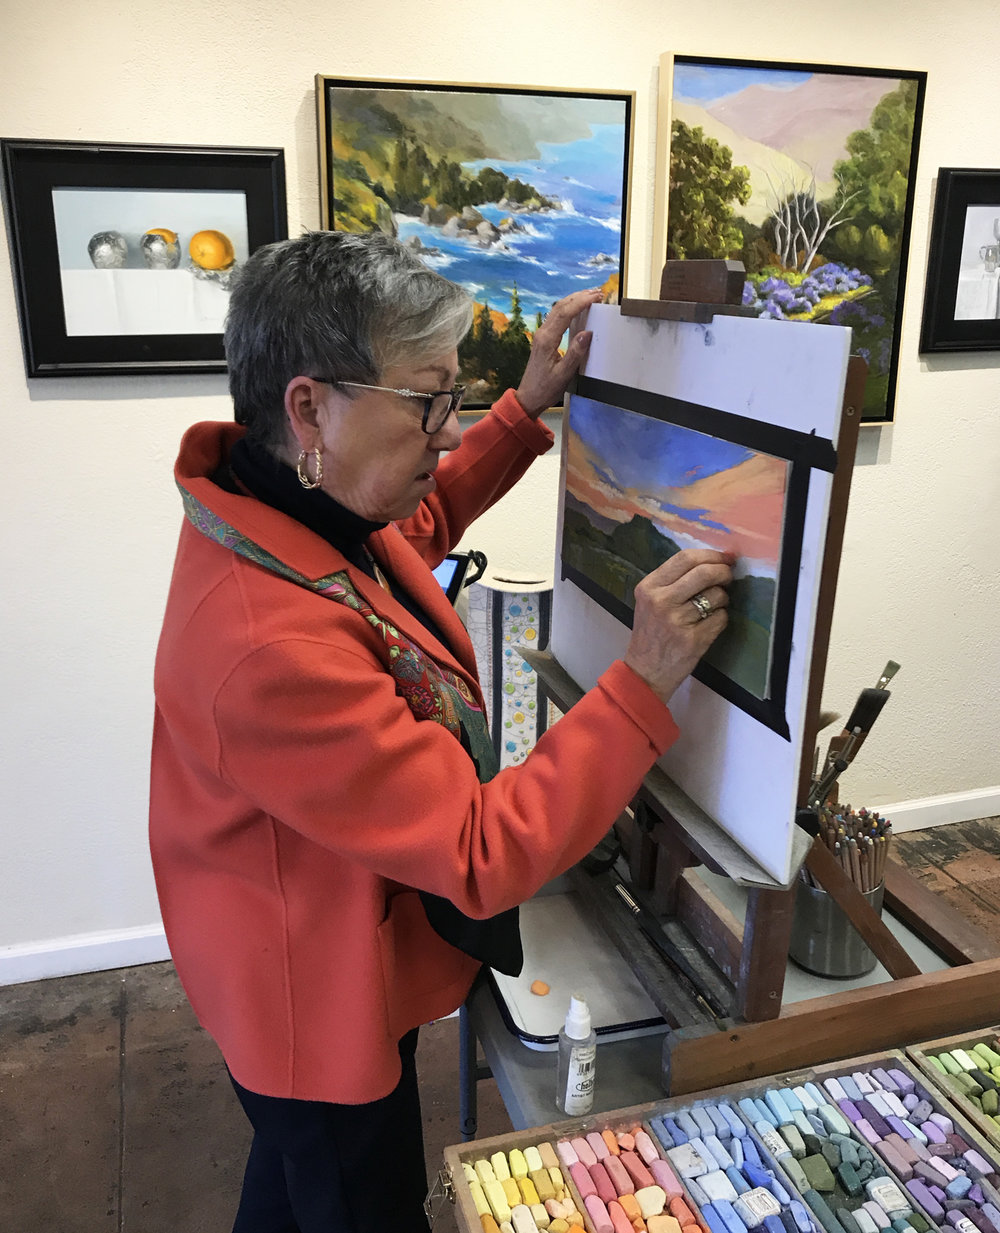 - We offer classes in both pastel and watercolor. The classes are usually 2 hours once a week. Students are responsible for bringing their own supplies.